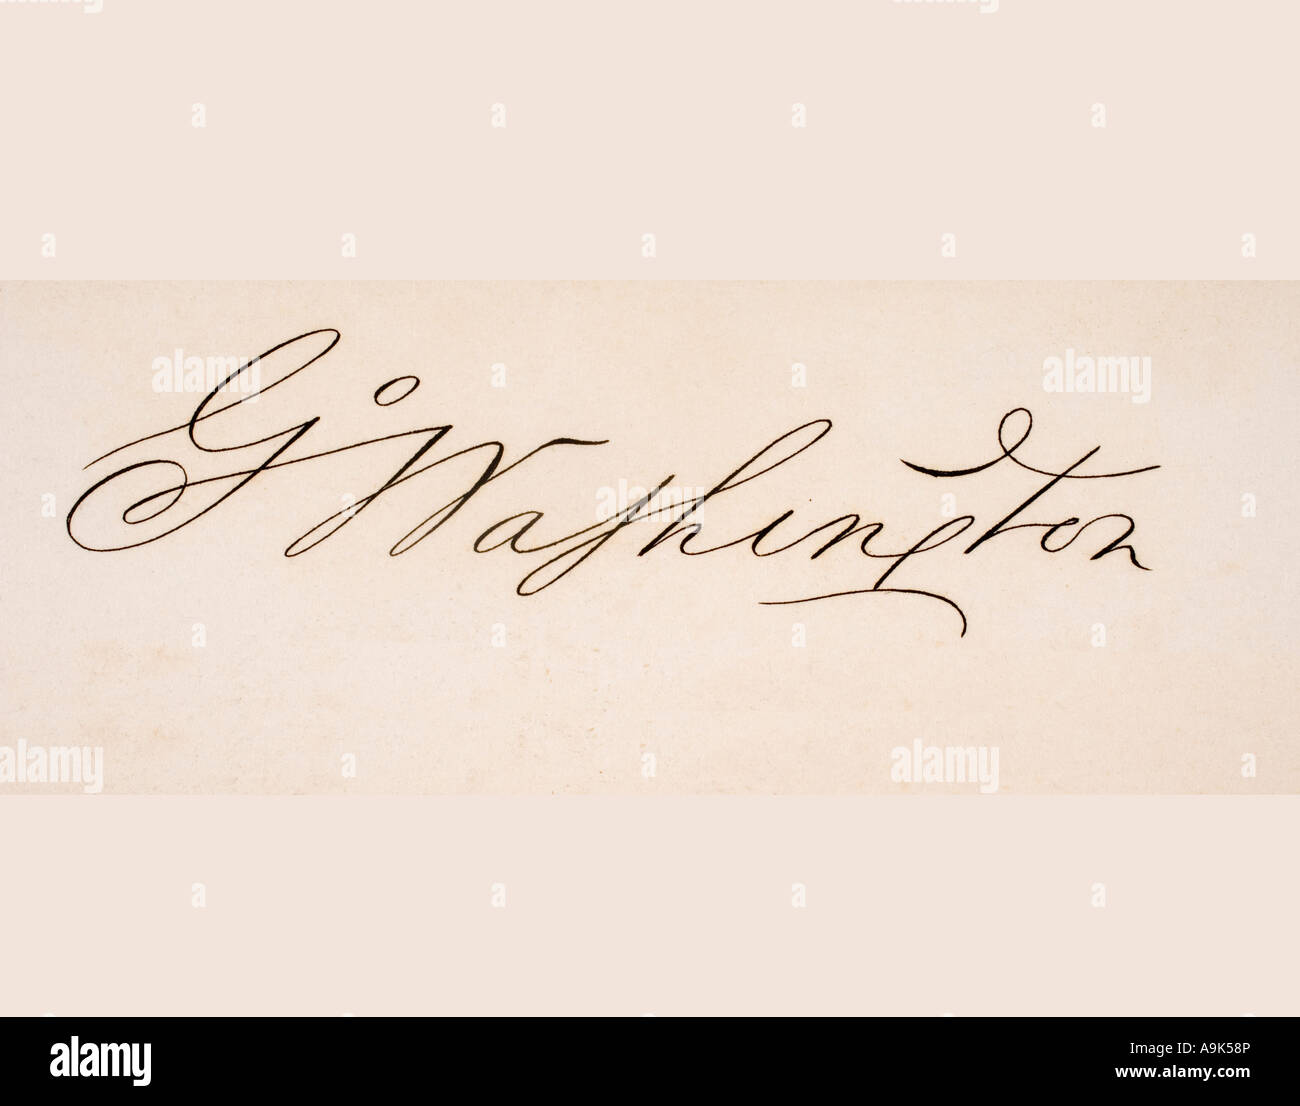 Signature of George Washington 1732 to 1799 First President of the United States of America Father of the Nation - Stock Image